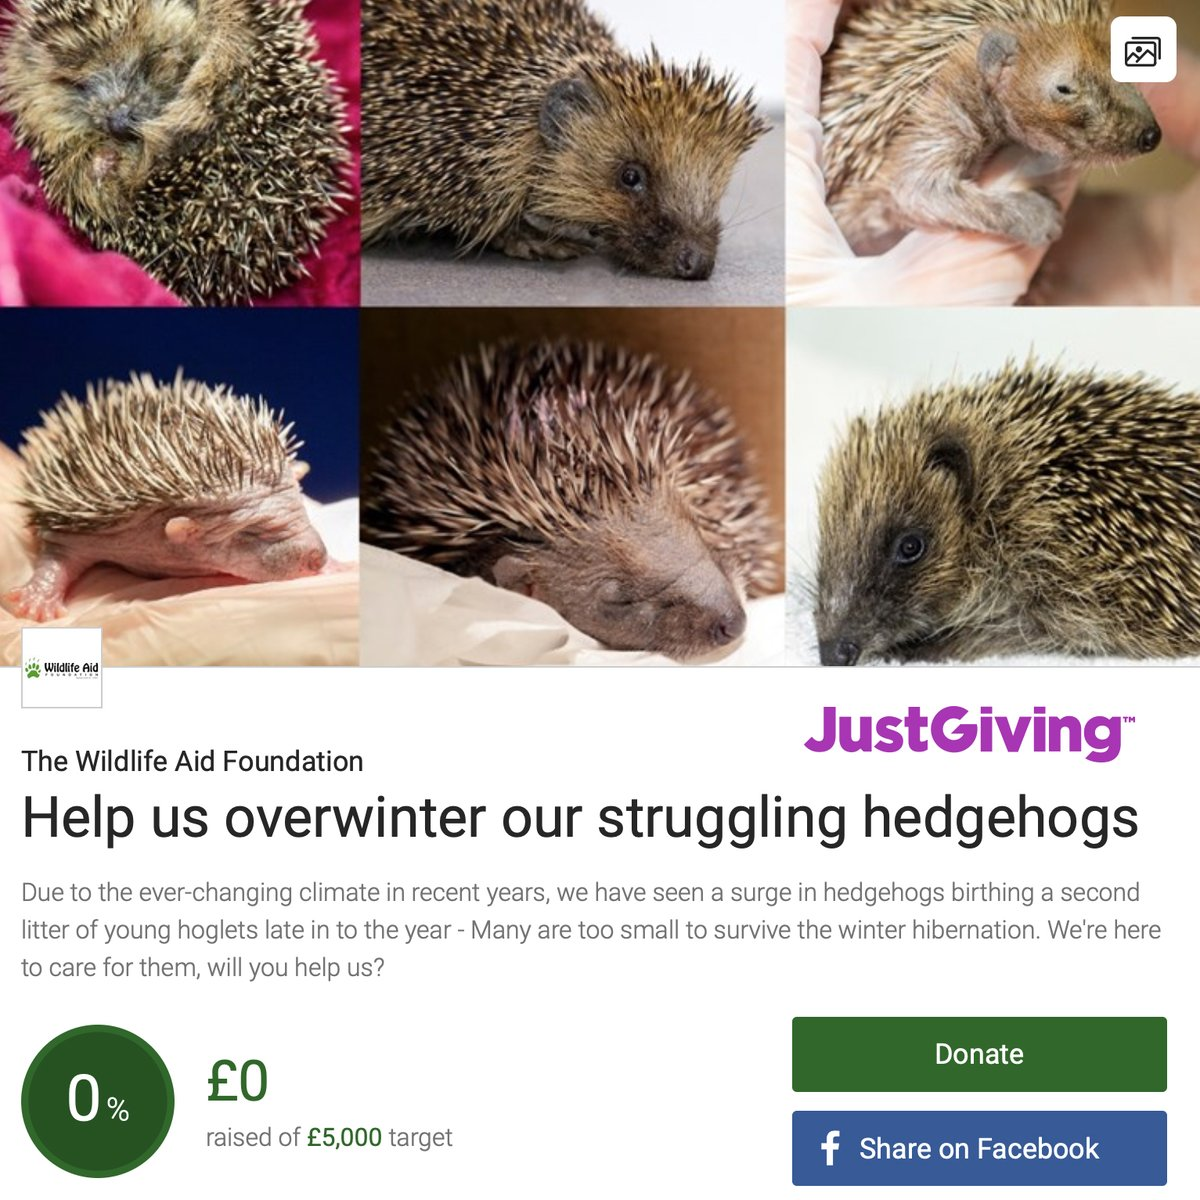 We have seen a surge in hedgehogs birthing a second litter of young hoglets late in to the year - Many are too small to survive winter hibernation.The struggling hoglets are brought in to us at WAF. But we need your help to feed them all! To donate visit: